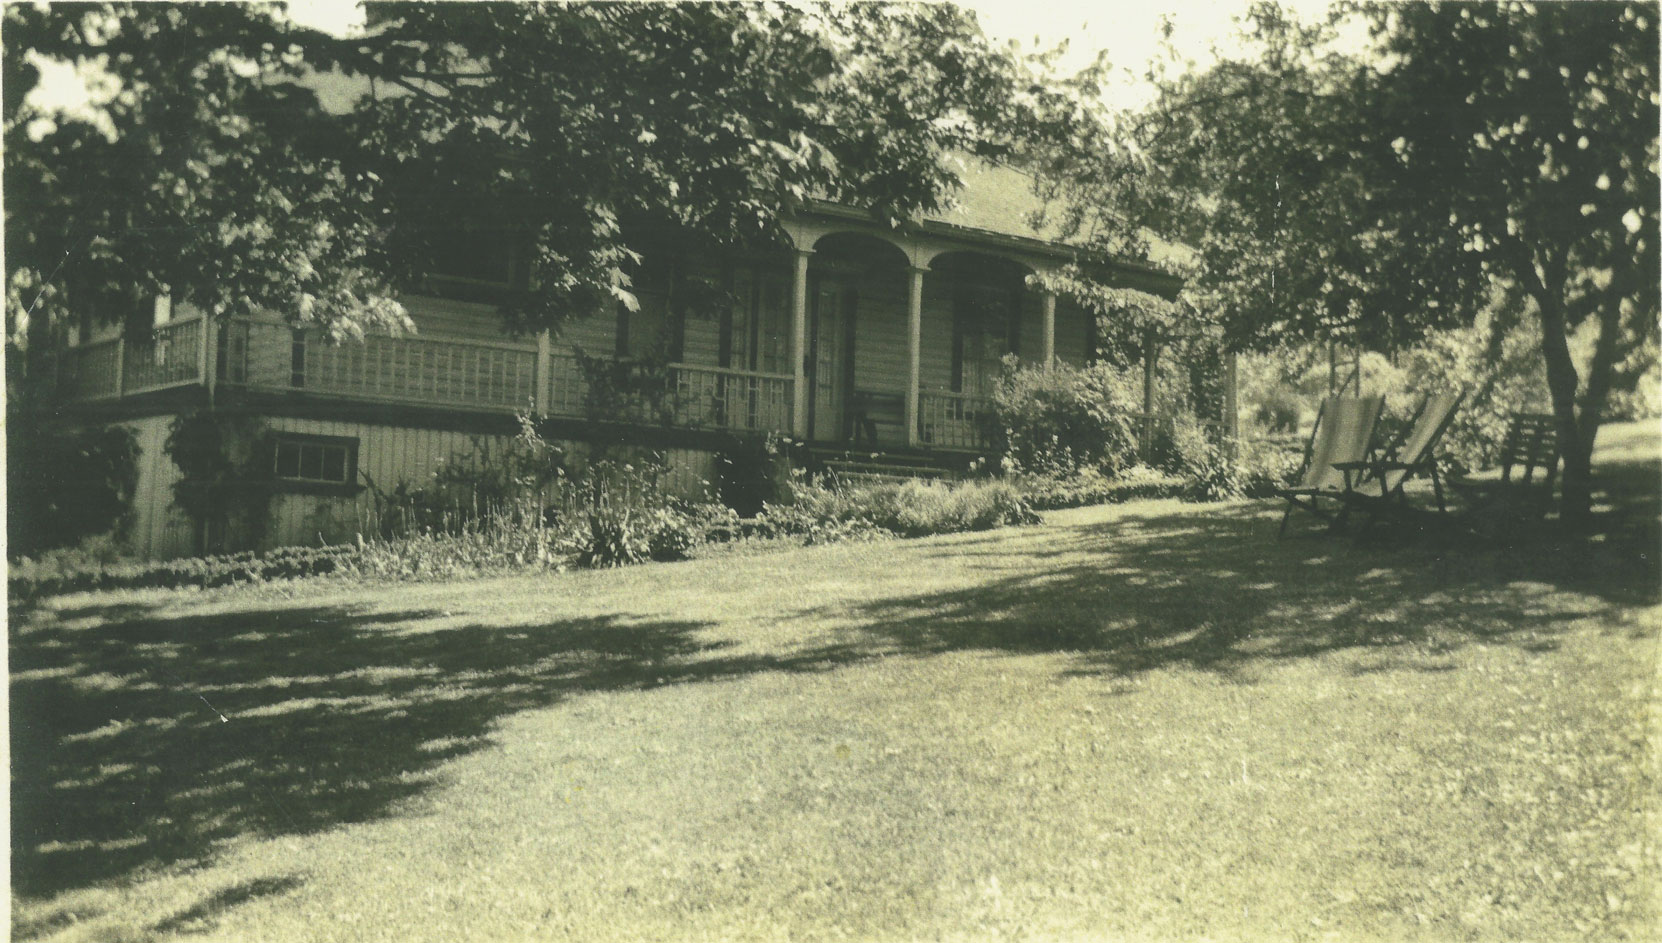 17 Methuen Street, circa 1930 (photo: Ladysmith Archives, Ladysmith & District Historical Society)